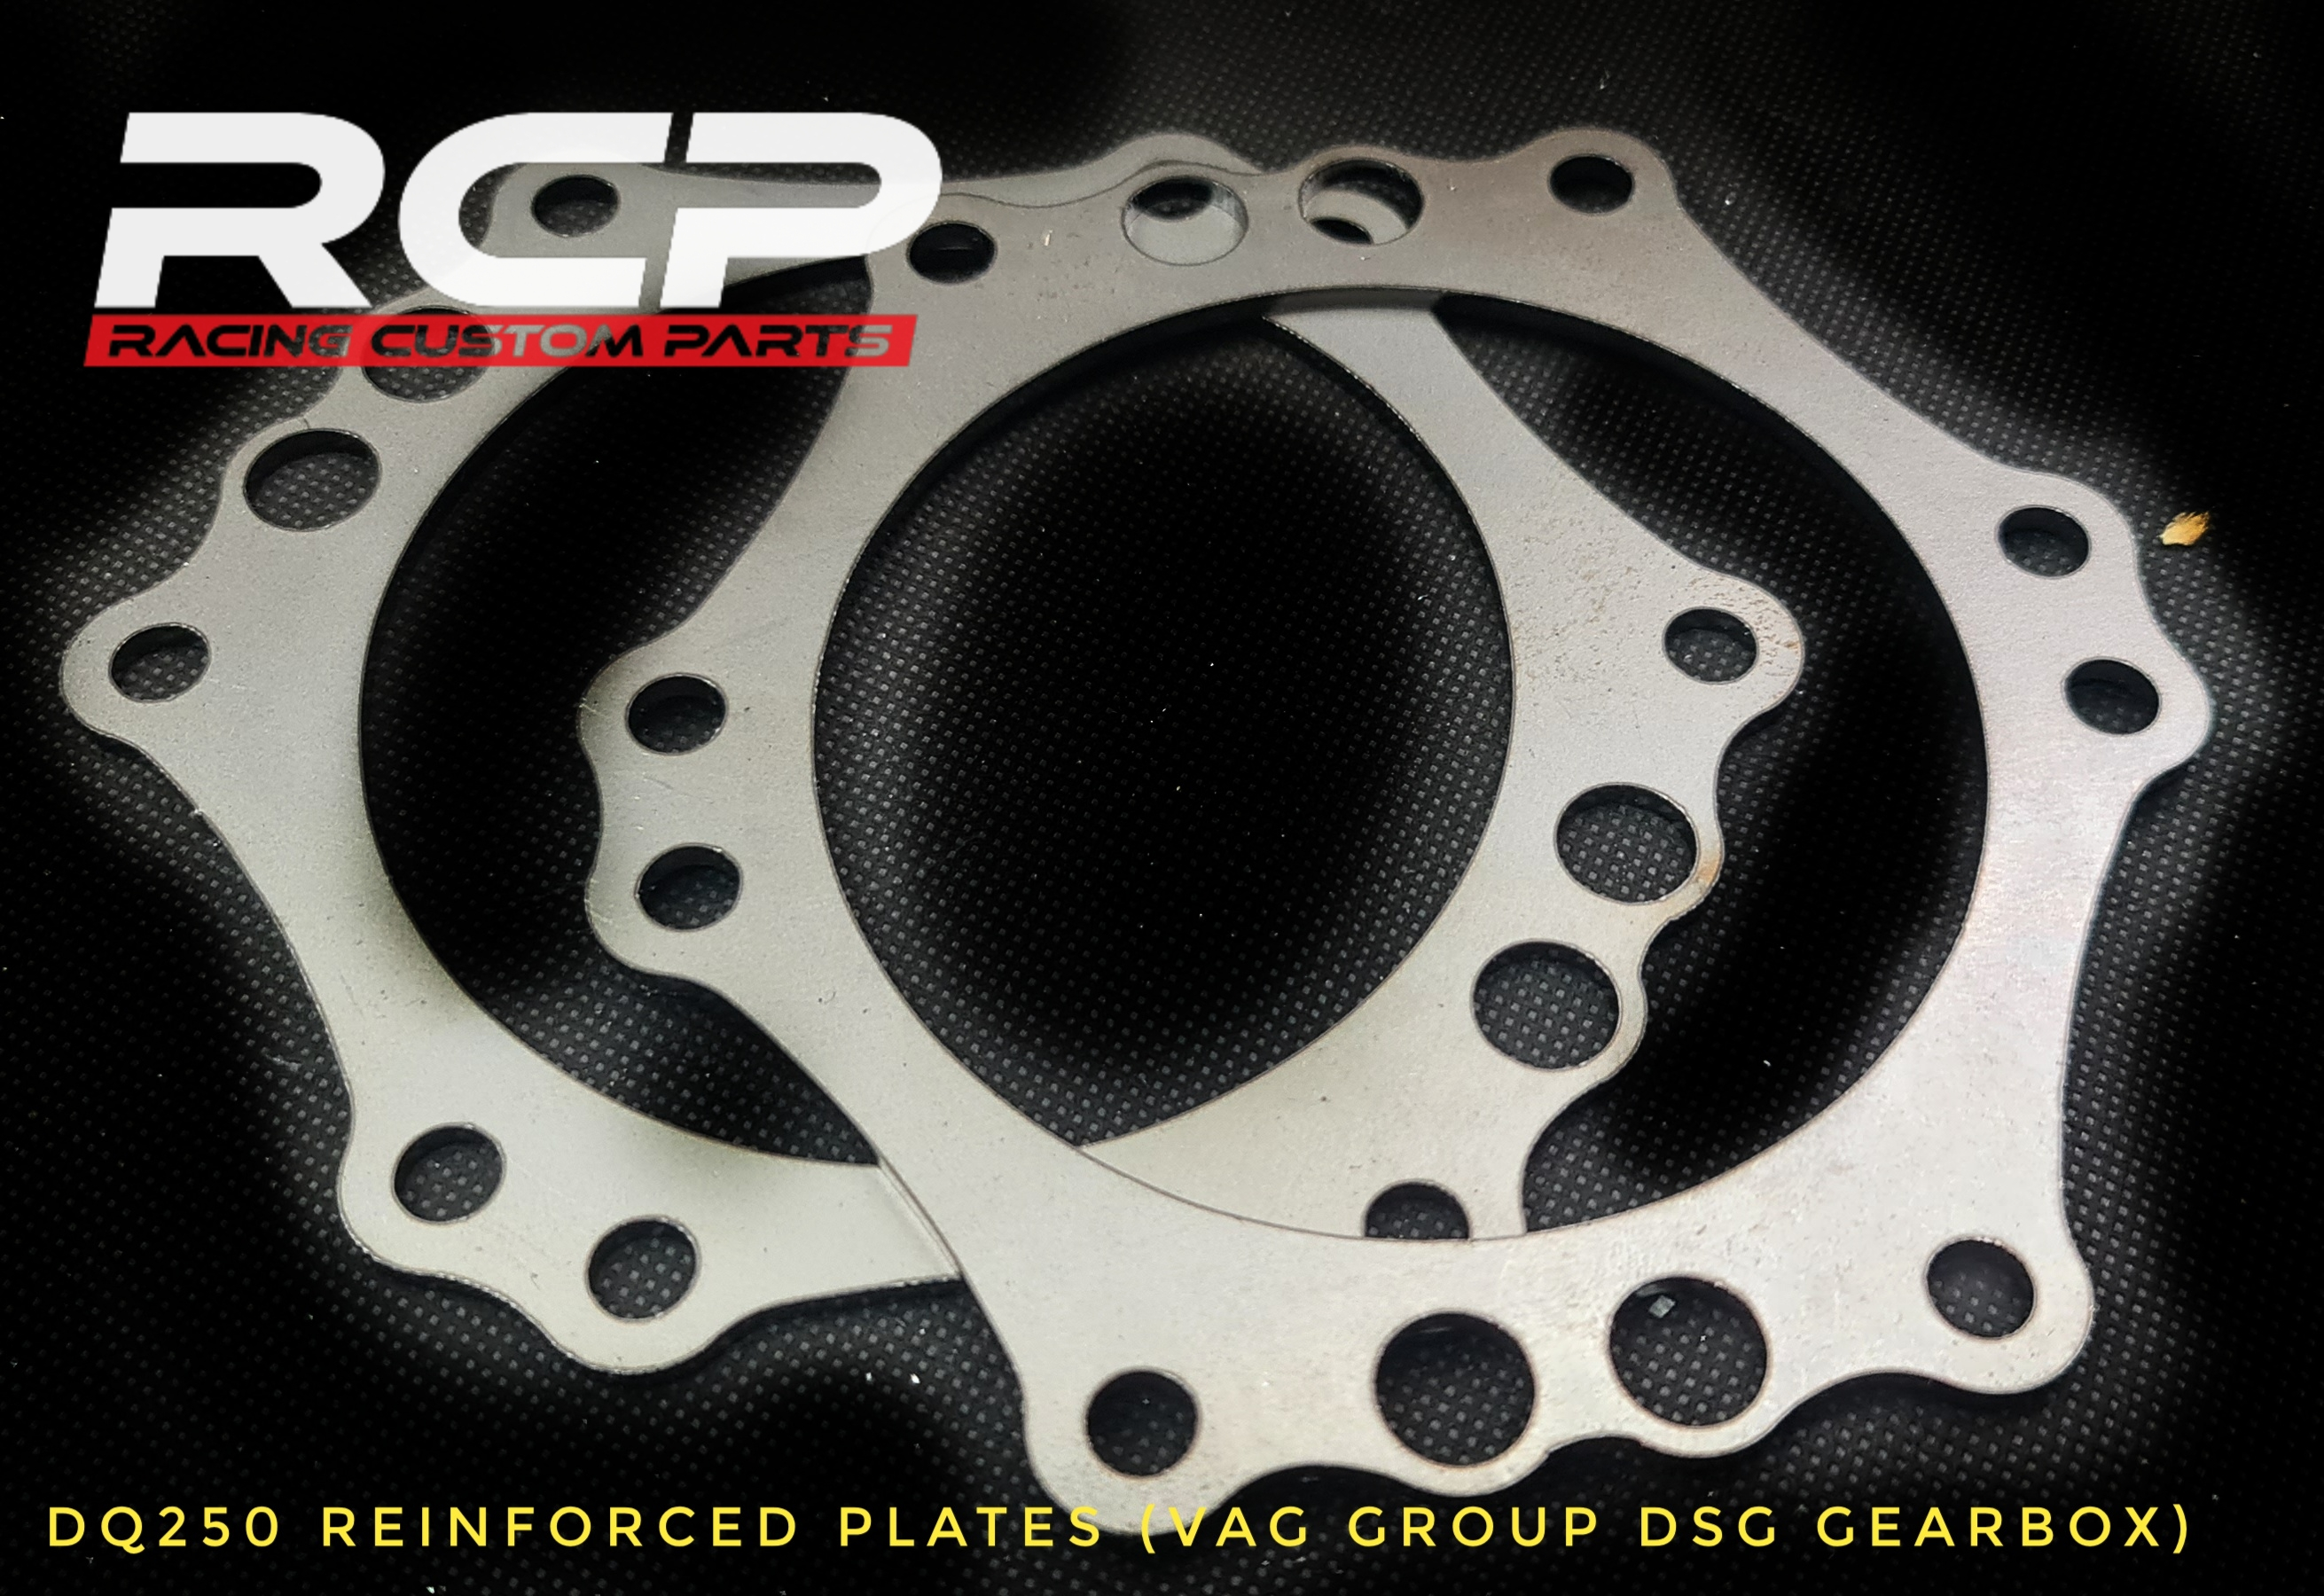 dq250 reinforced plates custom flywheel billet cnc racing custom parts dsg vag group gearbox